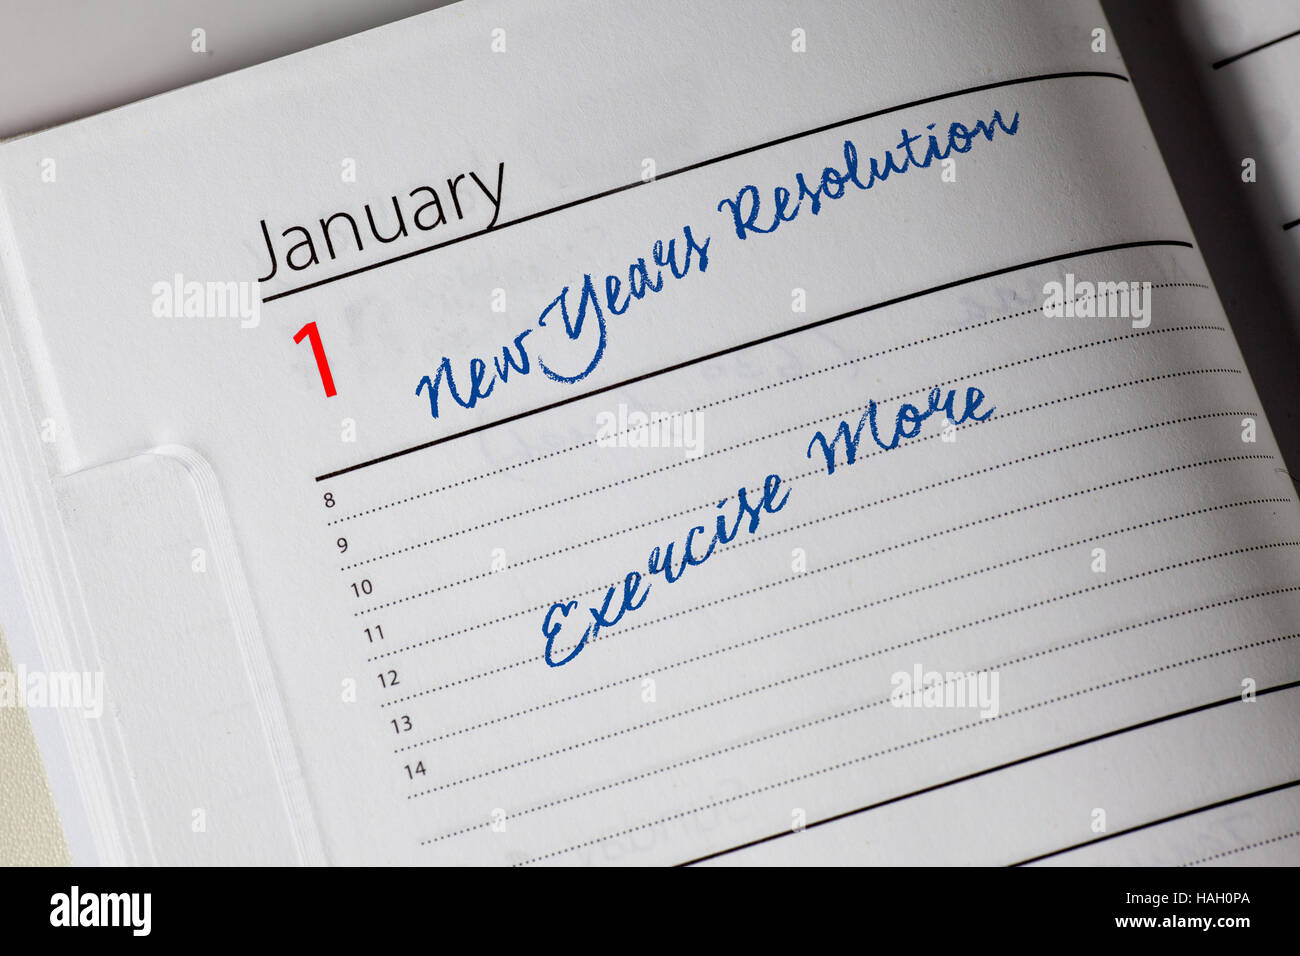 New Years Resolution in the diary - Stock Image